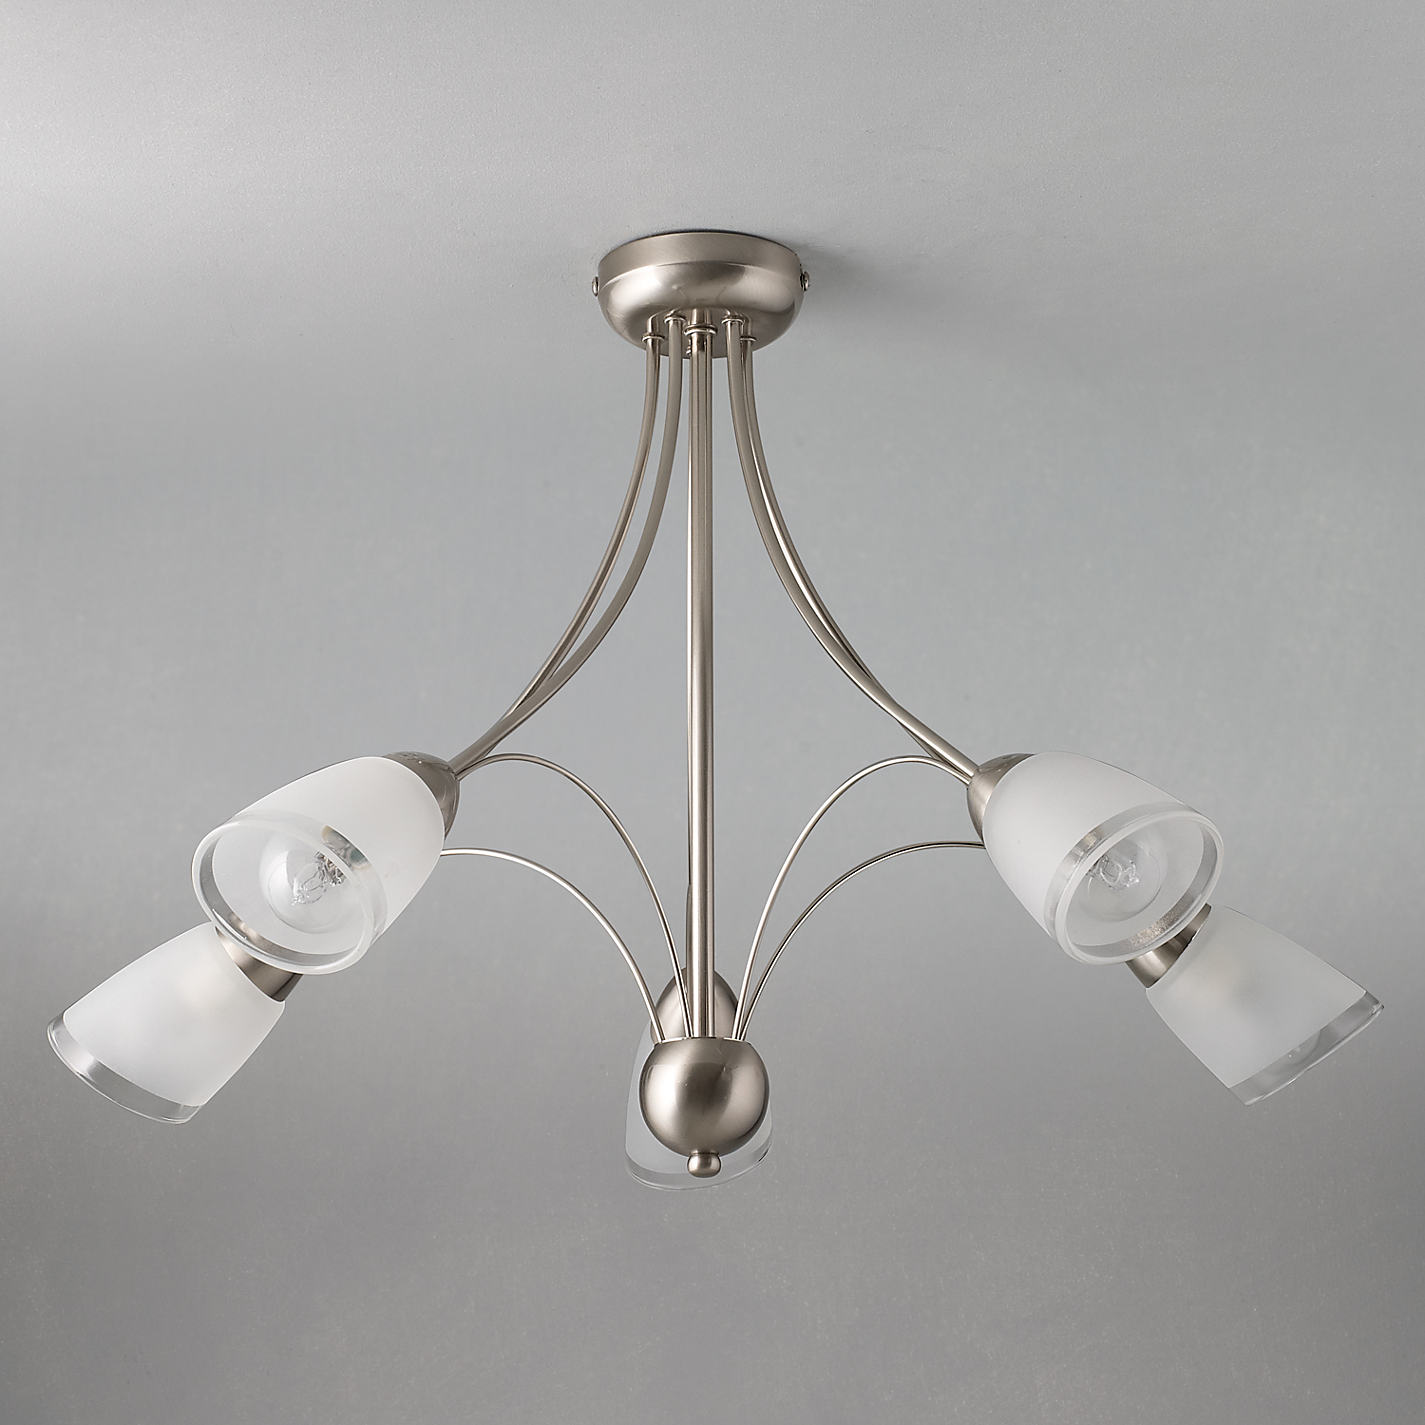 Buy john lewis mizar ceiling light 5 arm john lewis buy john lewis mizar ceiling light 5 arm online at johnlewis aloadofball Gallery